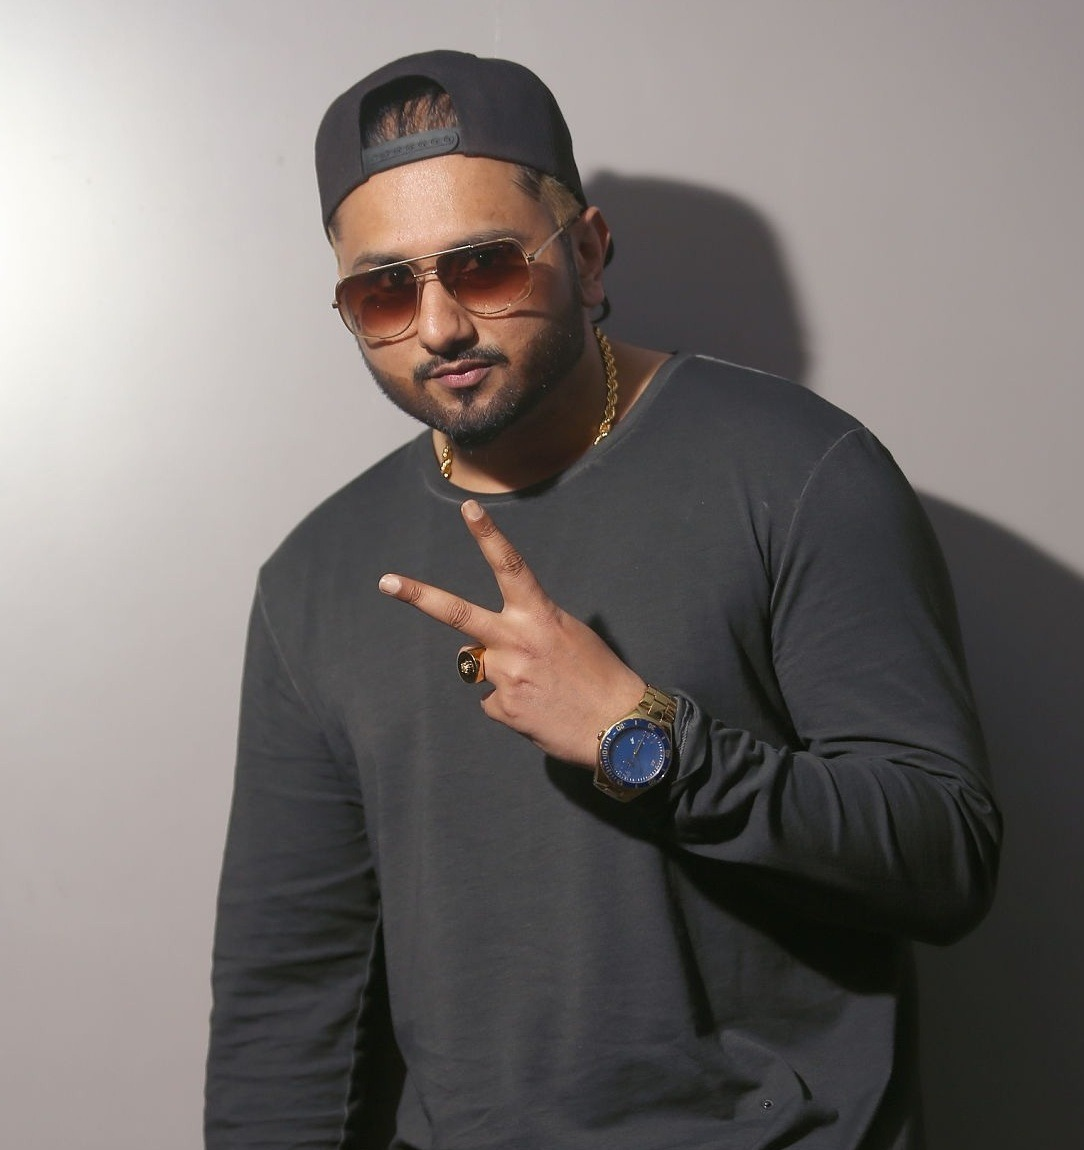 Honey singh wallpaper